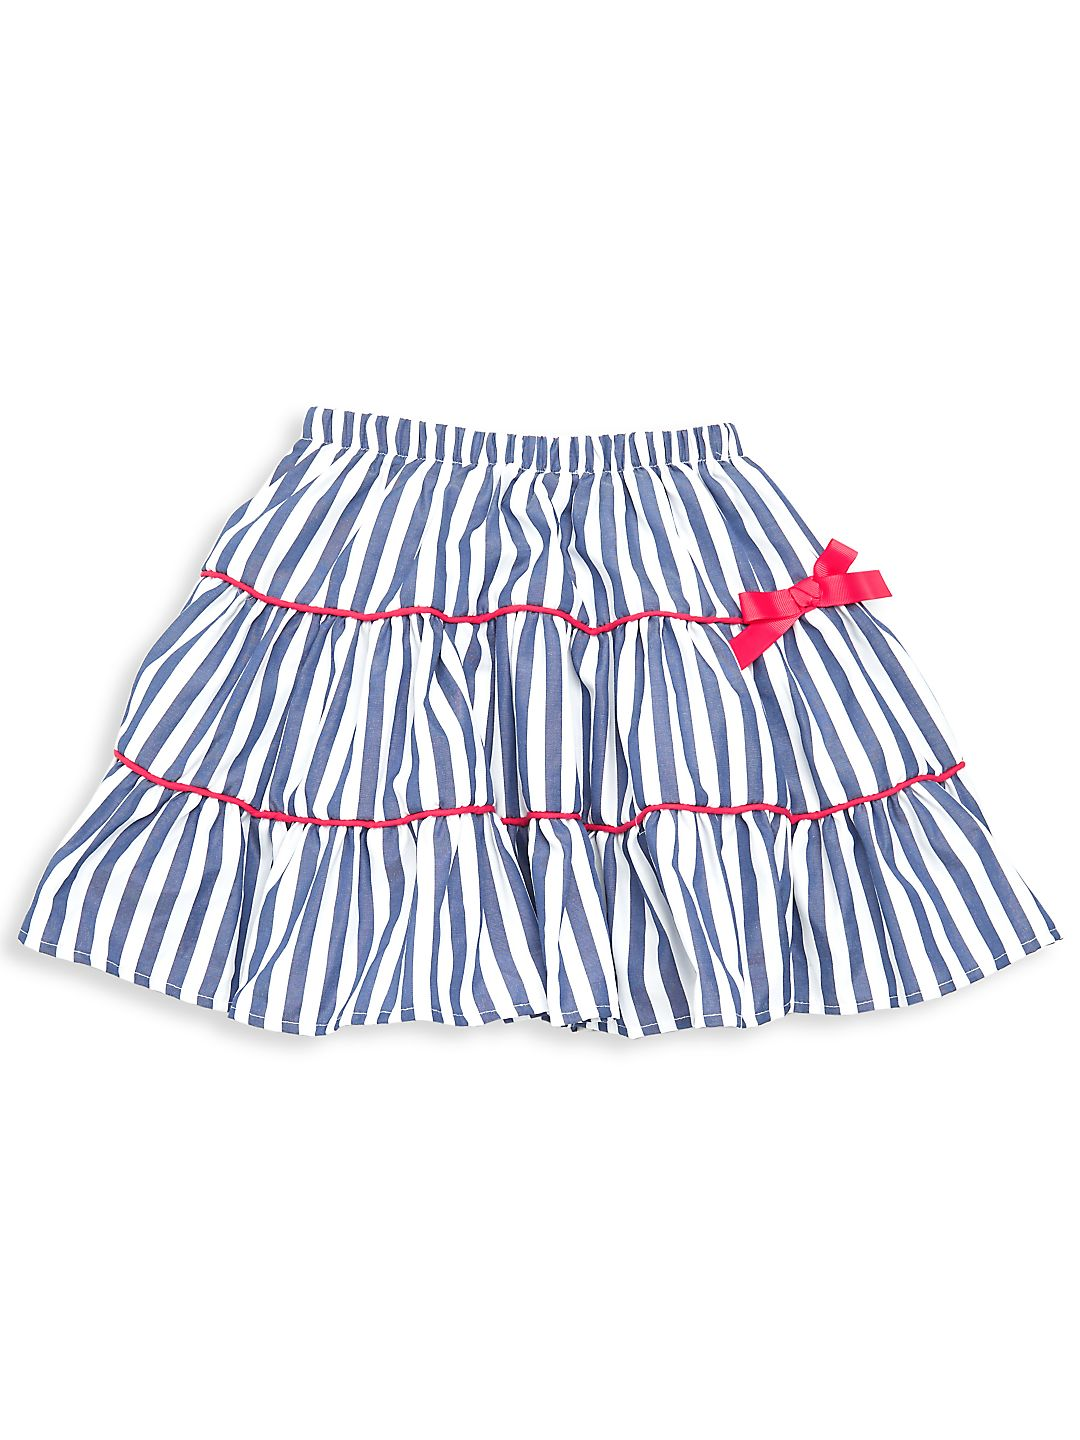 Little Girl's Striped Skirt